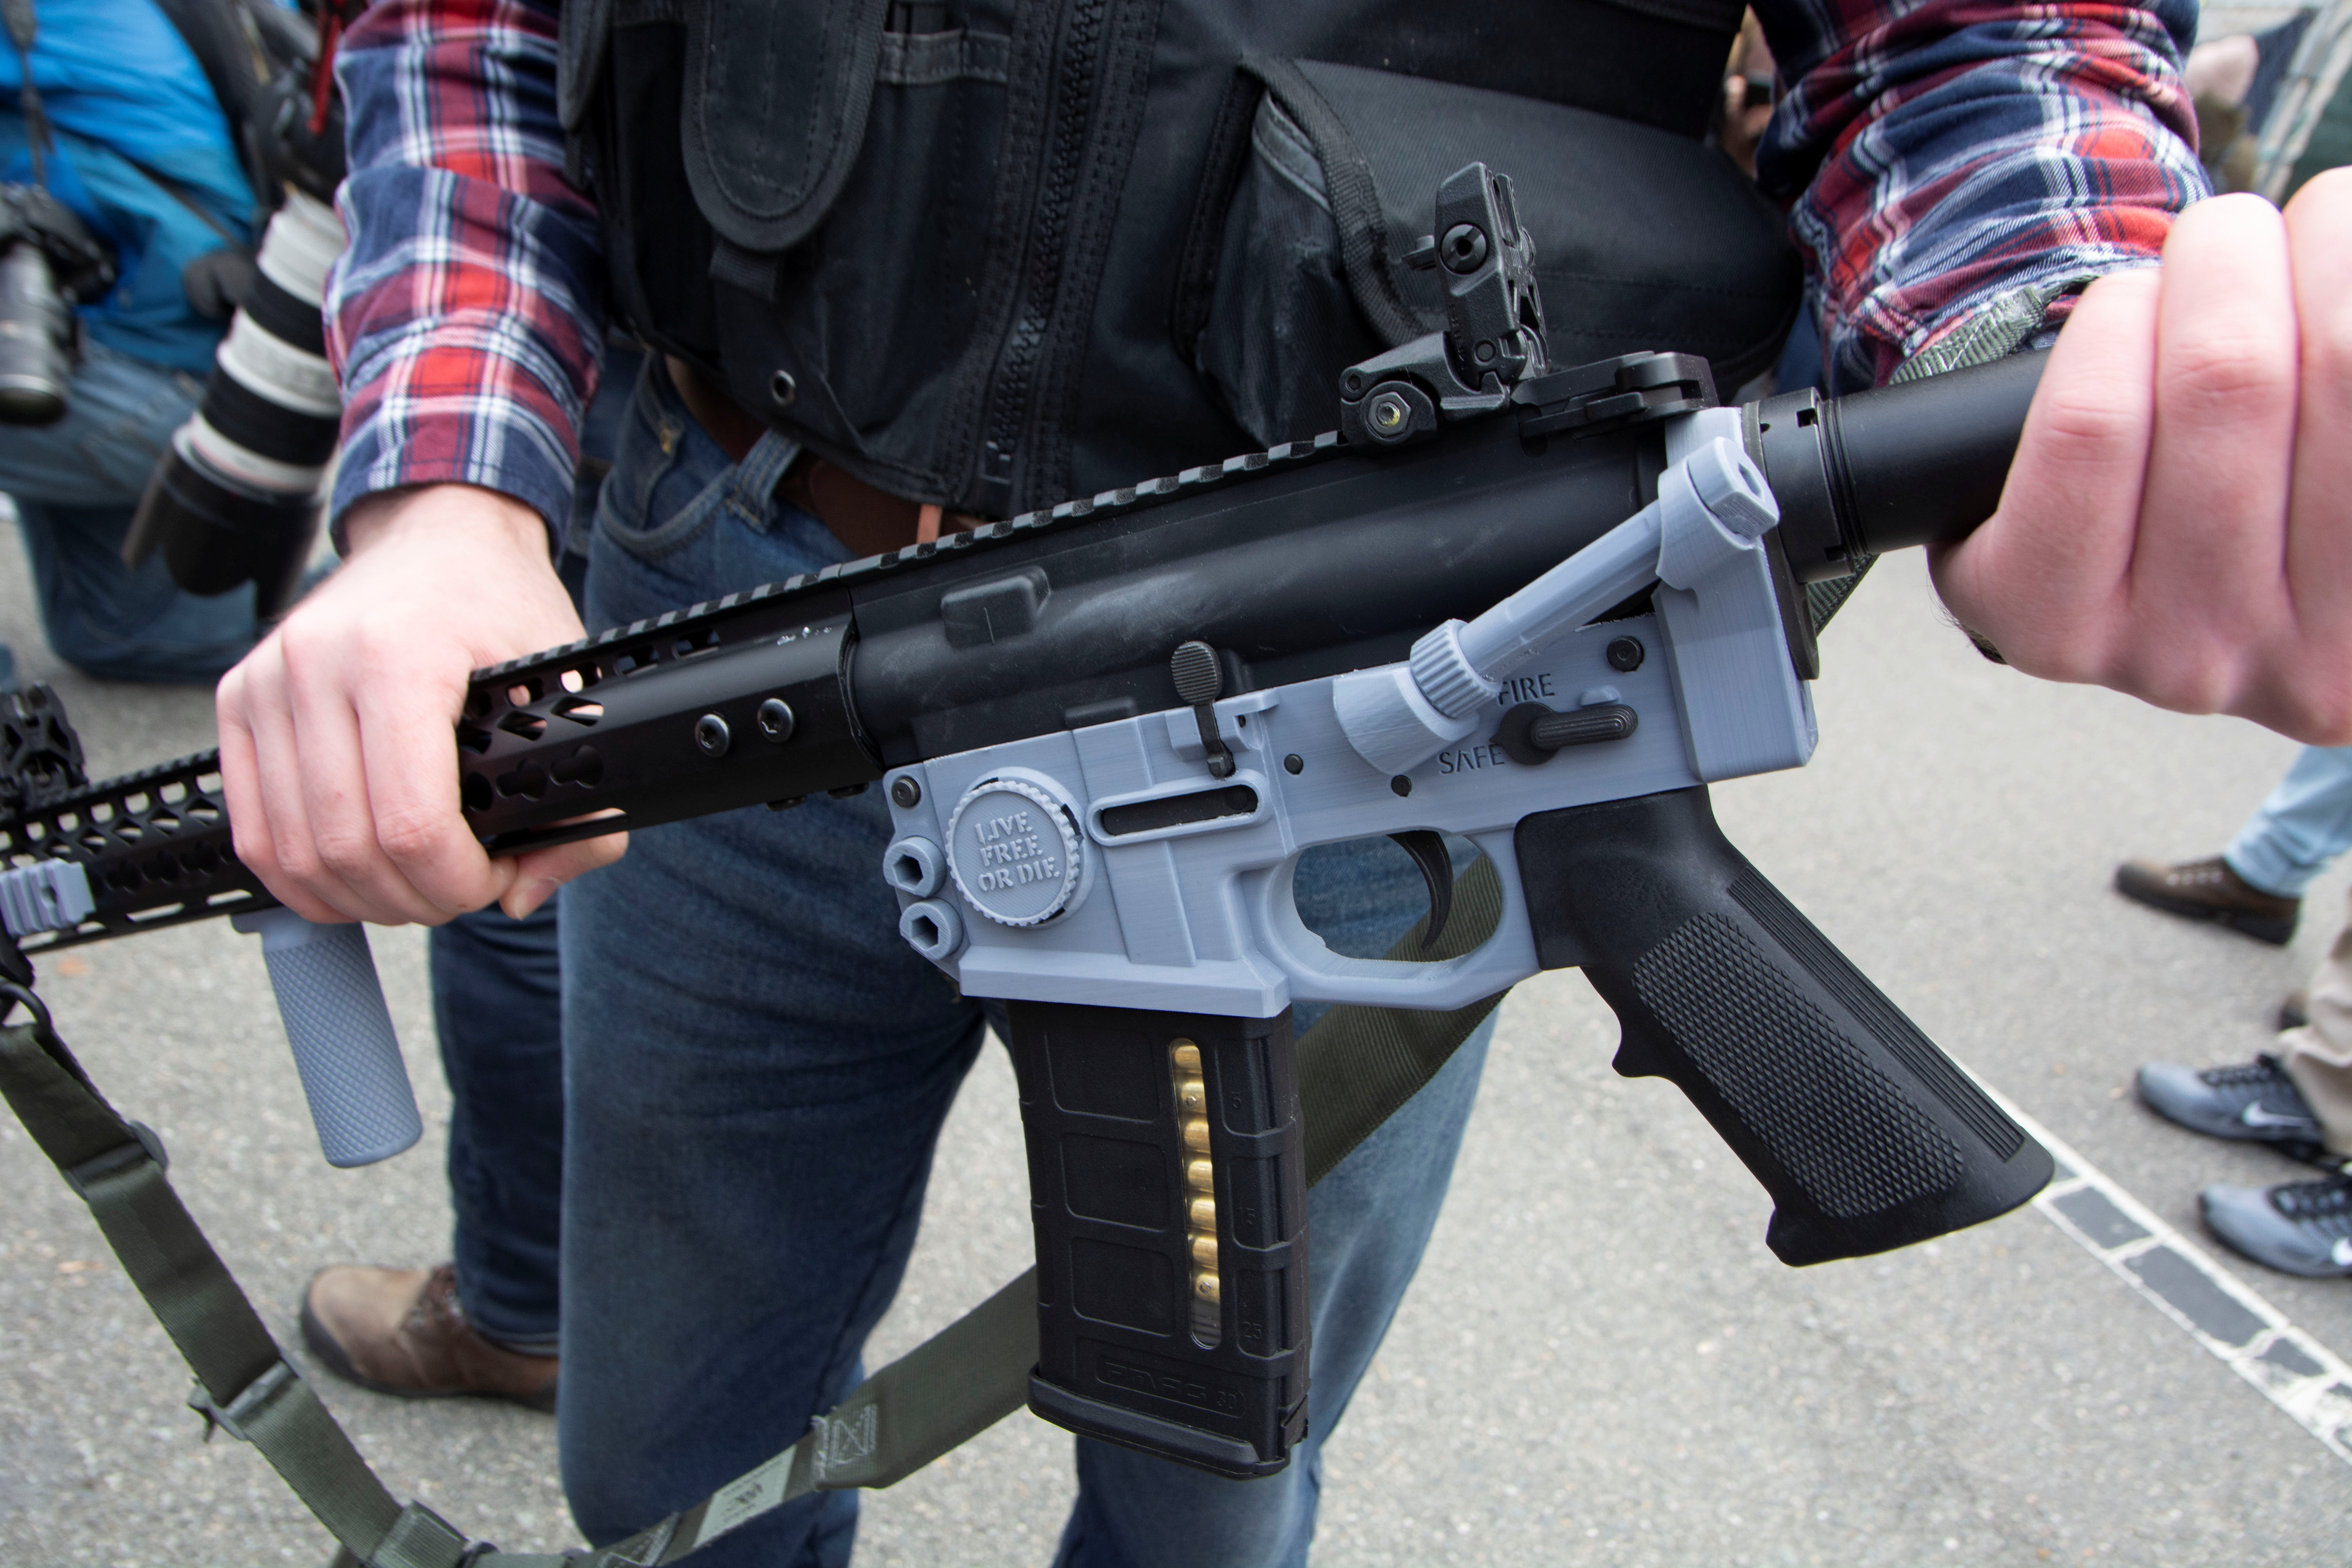 A participant in an armed rally shows a gun that has a 3D printed lower receiver, a weapon known as a